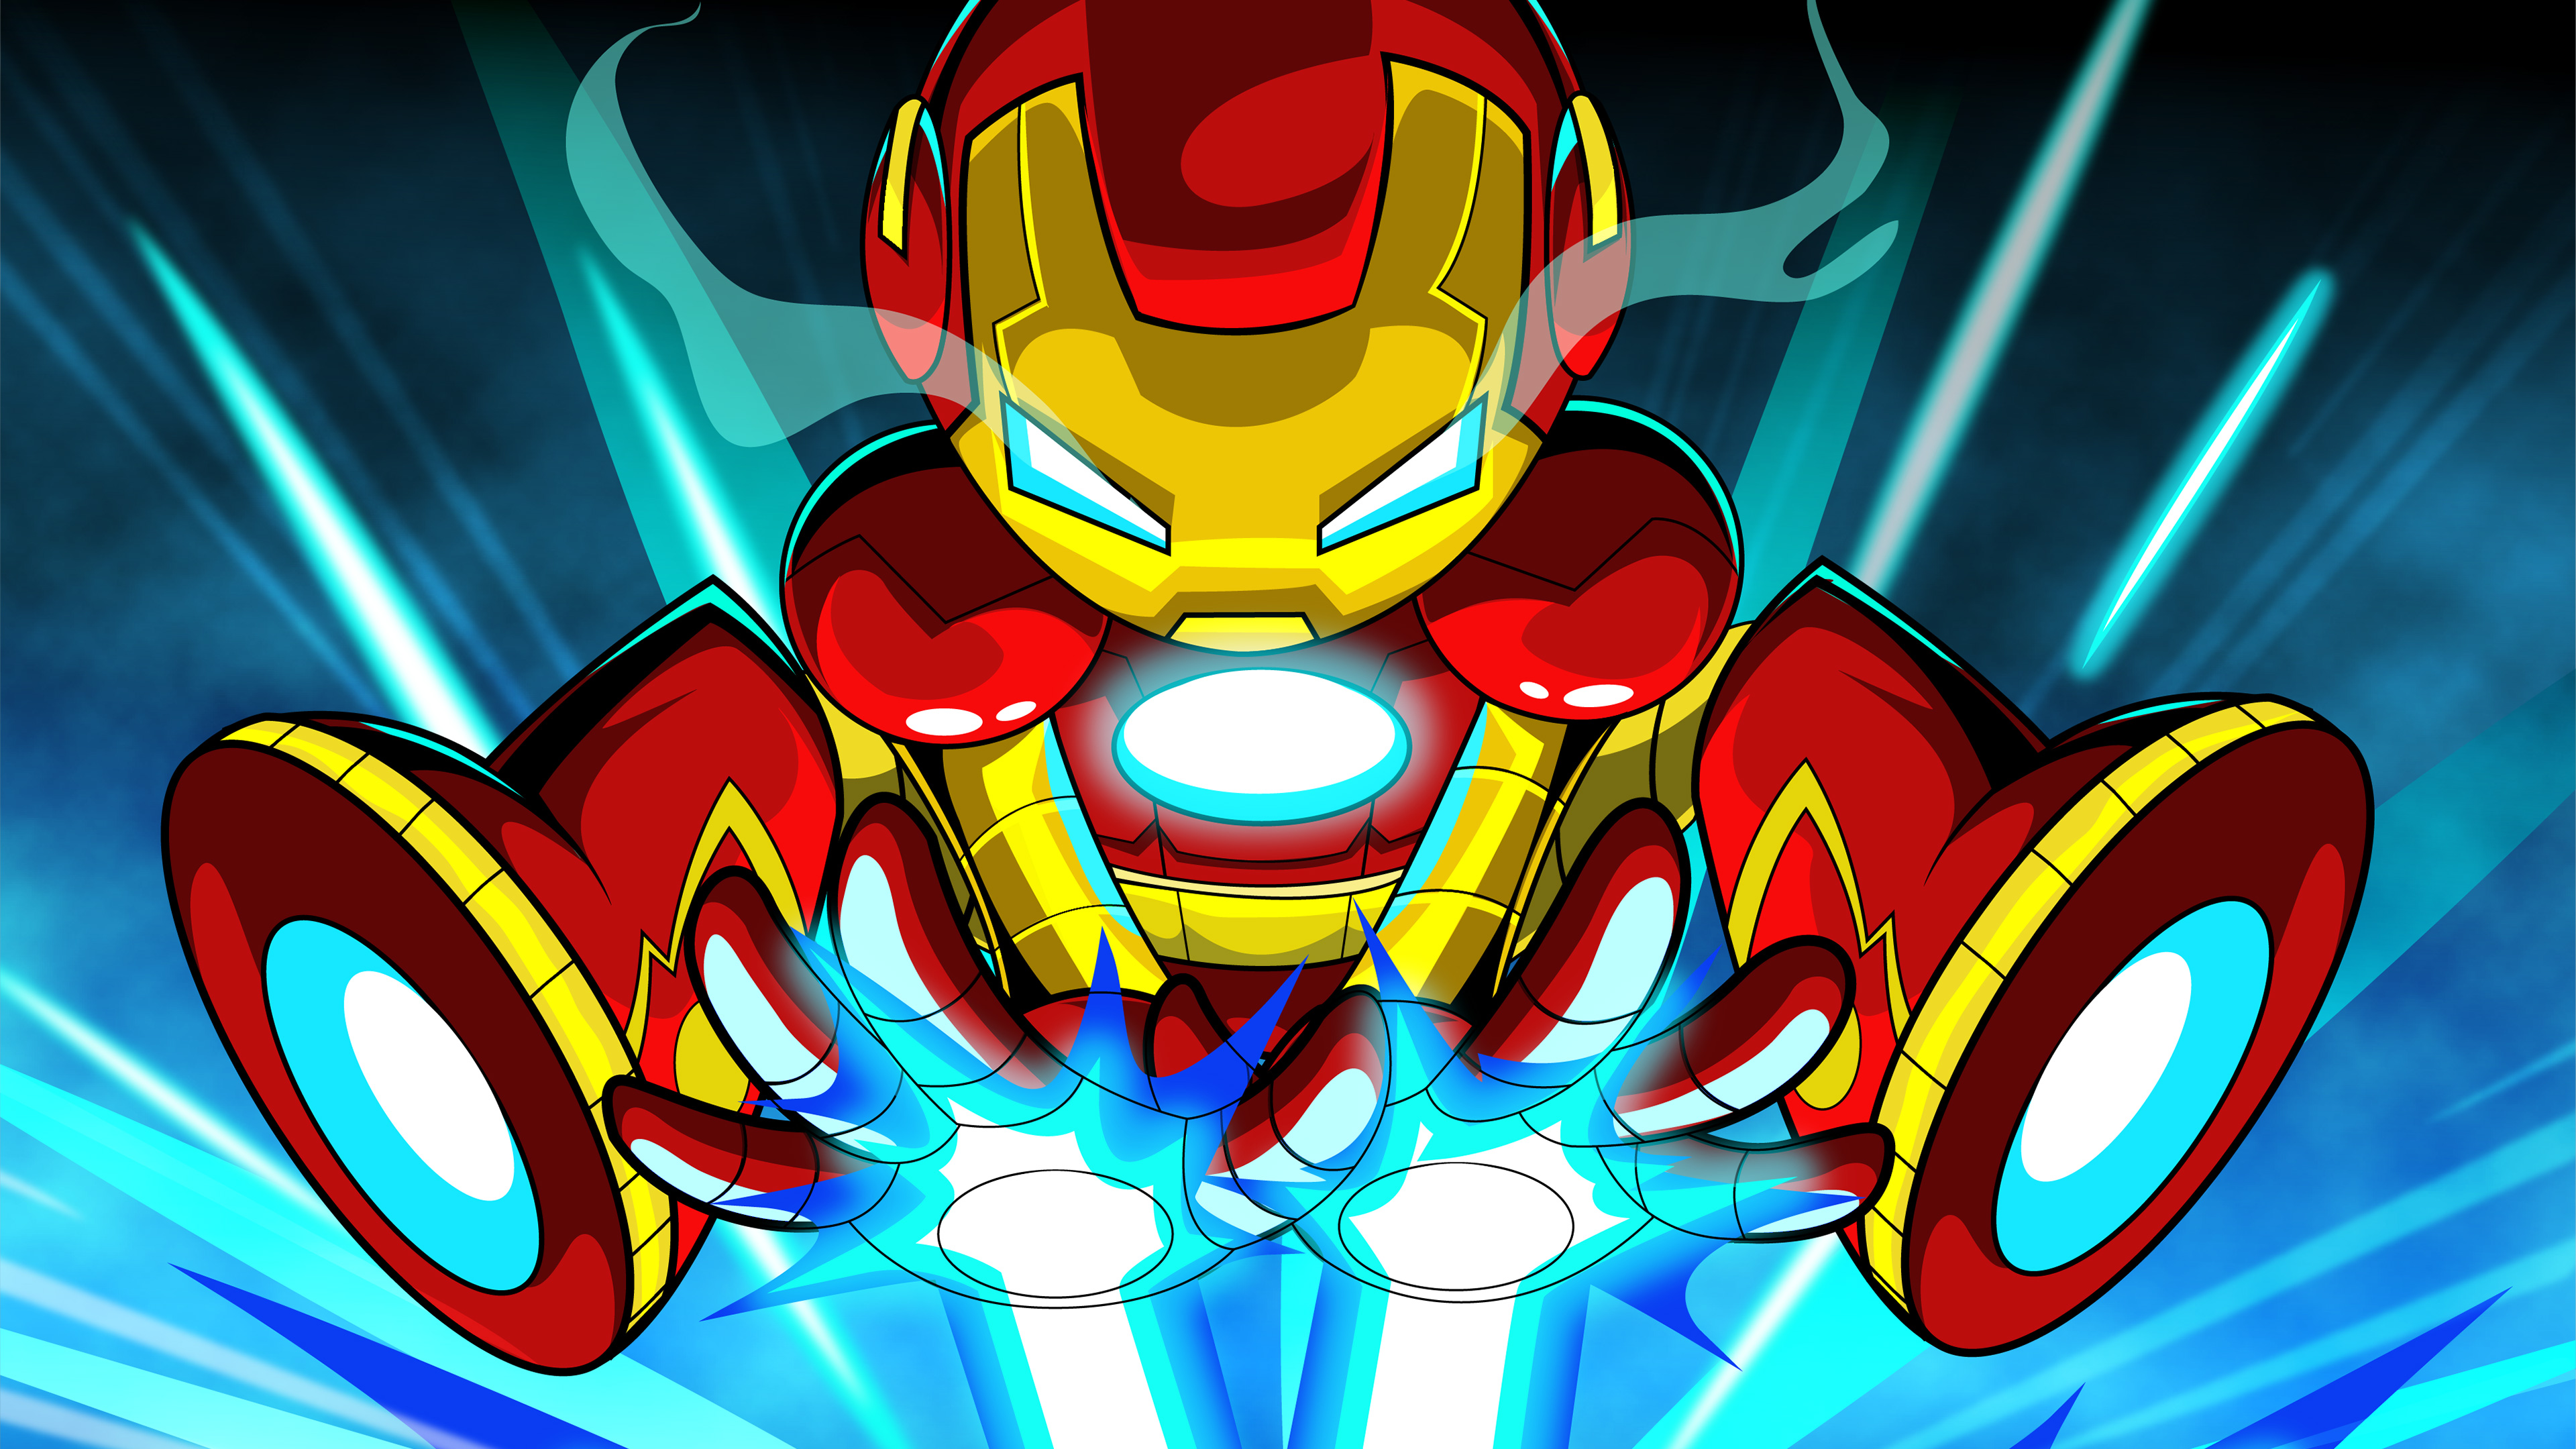 Wallpaper 4k Iron Man Cartoon Digital Art 4k 4k Wallpapers Artist